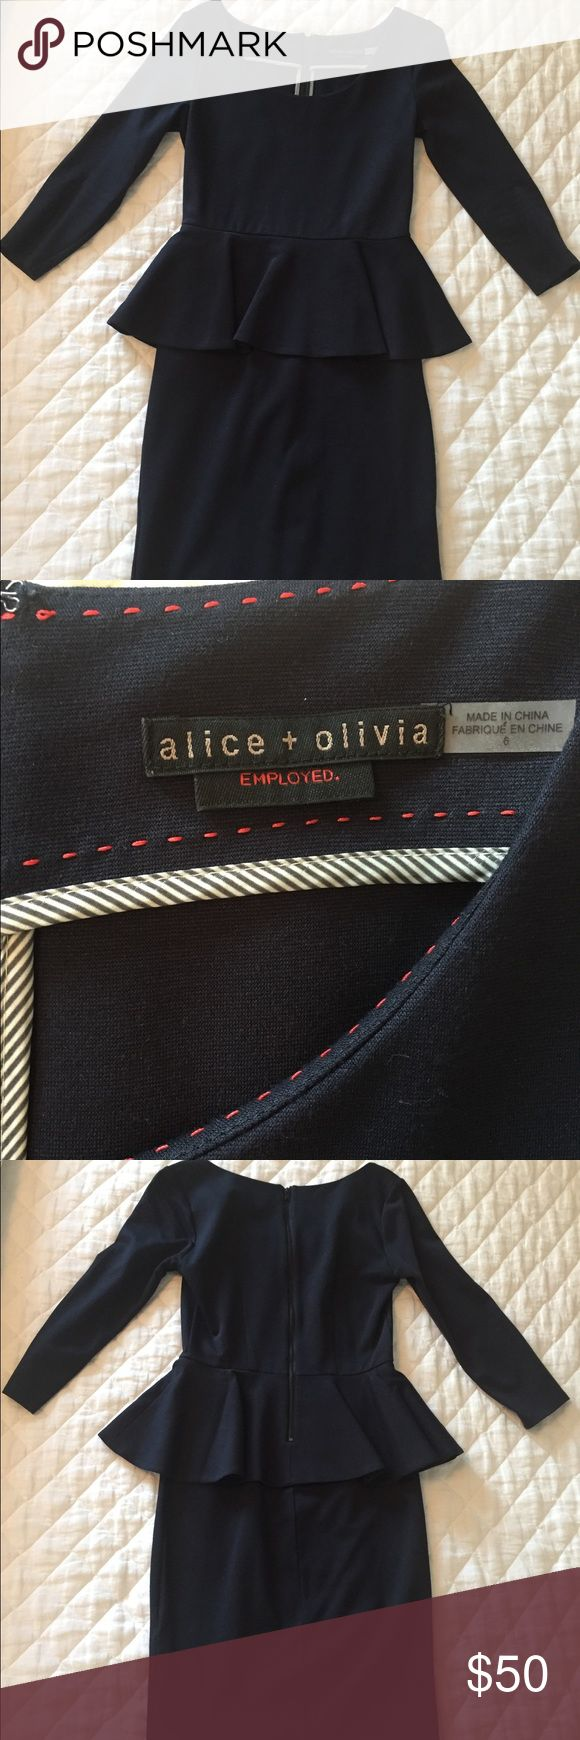 Alice & Olivia Navy Peplum 3/4 sleeve Work Dress Alice & Olivia Employed. Navy peplum work dress. Rayon and polyester. Body-hugging. Peplum creates appealing curves, material is very comfortable. Lightly worn. Alice & Olivia Dresses Mini